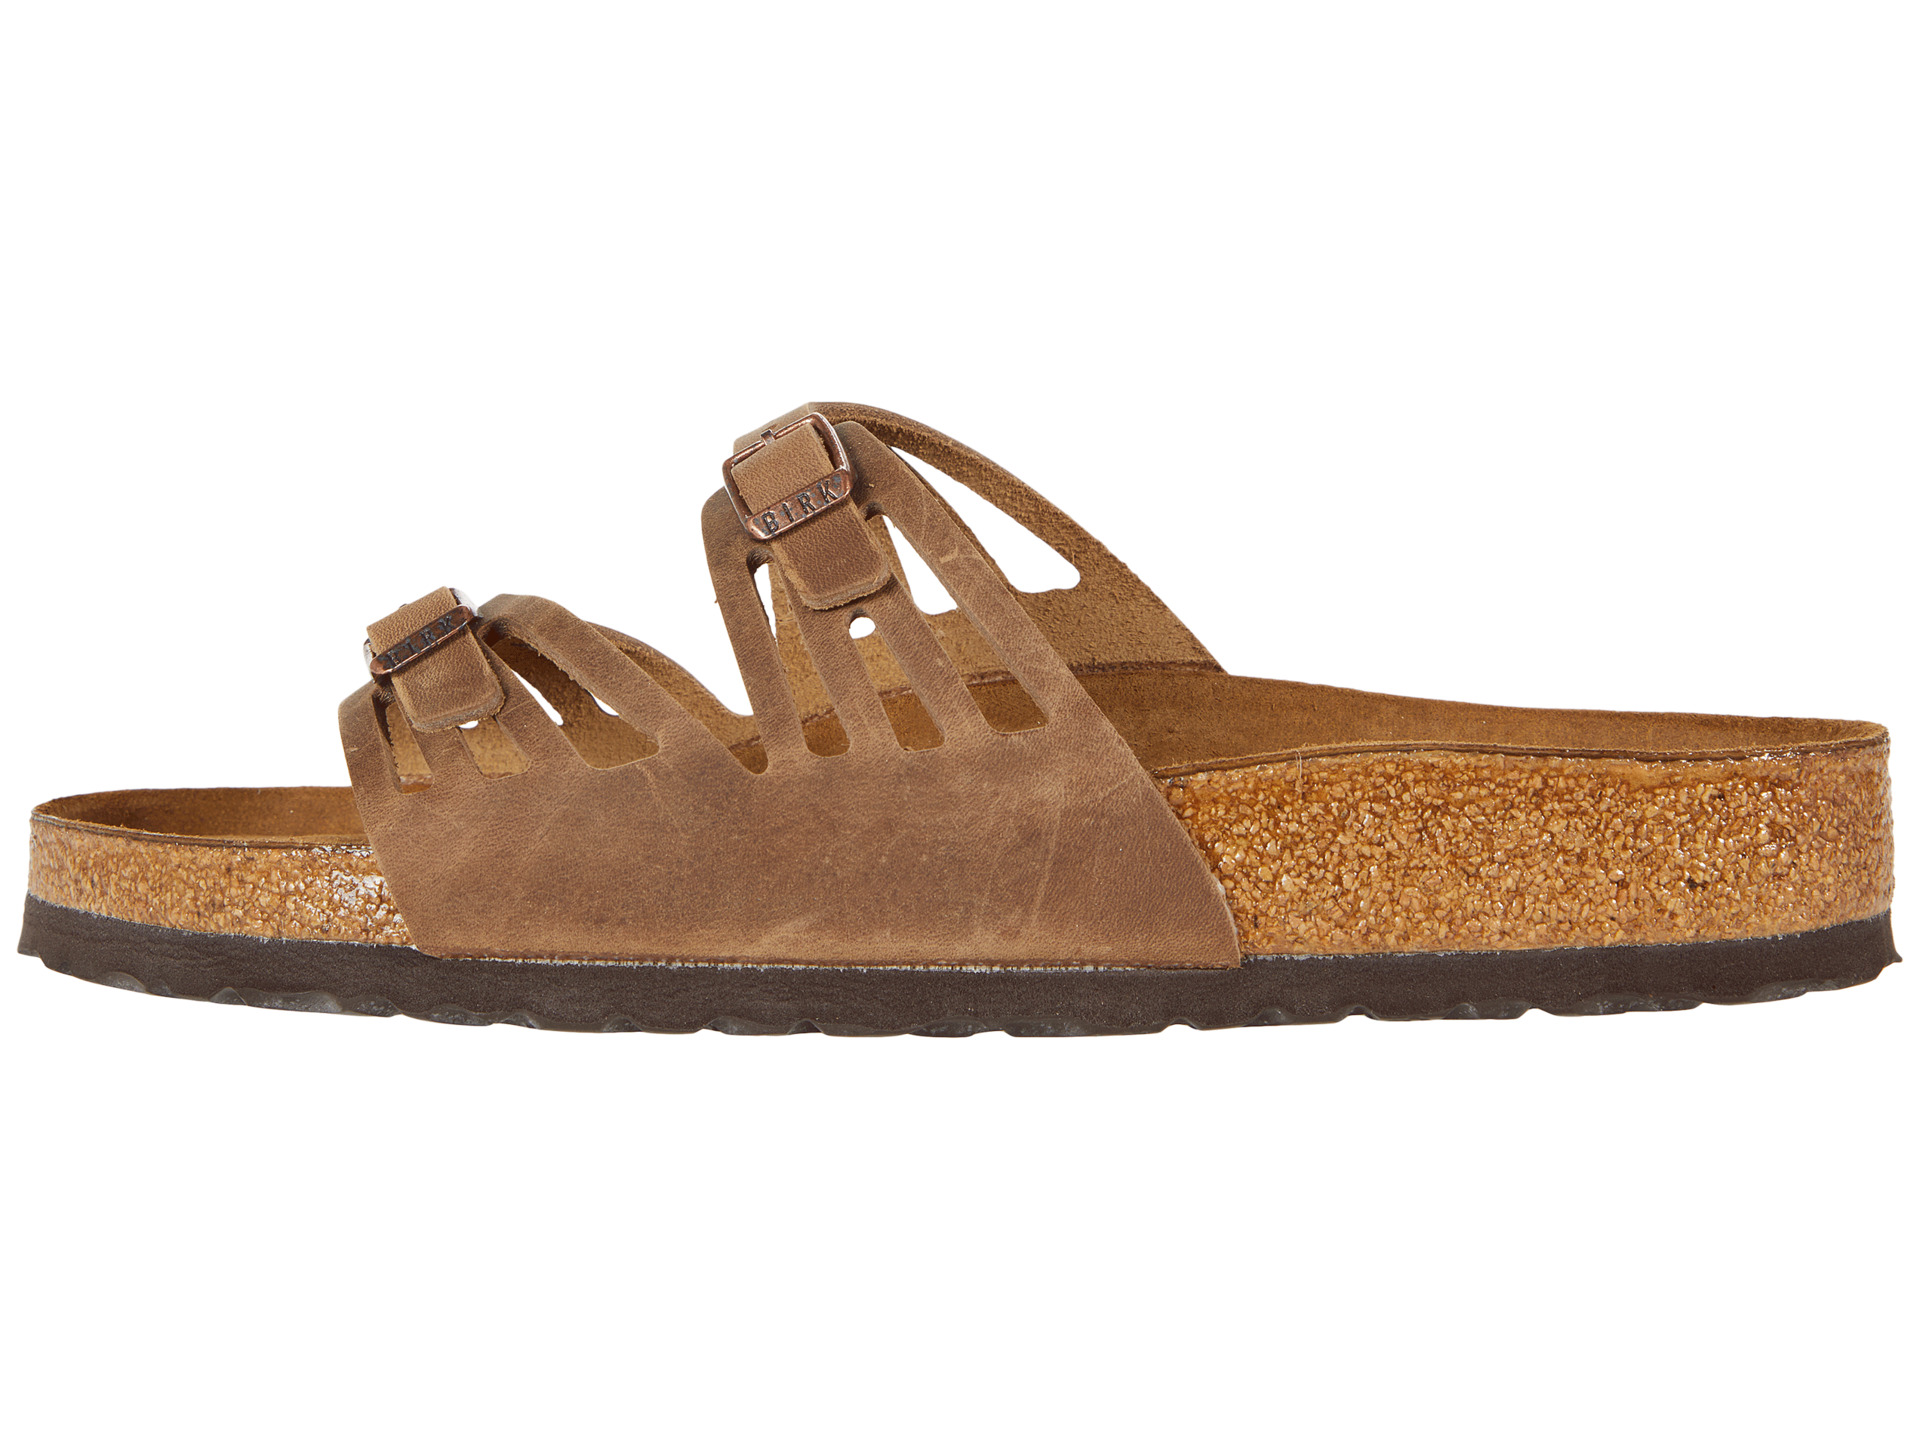 Birkenstock Granada Soft Footbed - Zappos.com Free Shipping BOTH Ways